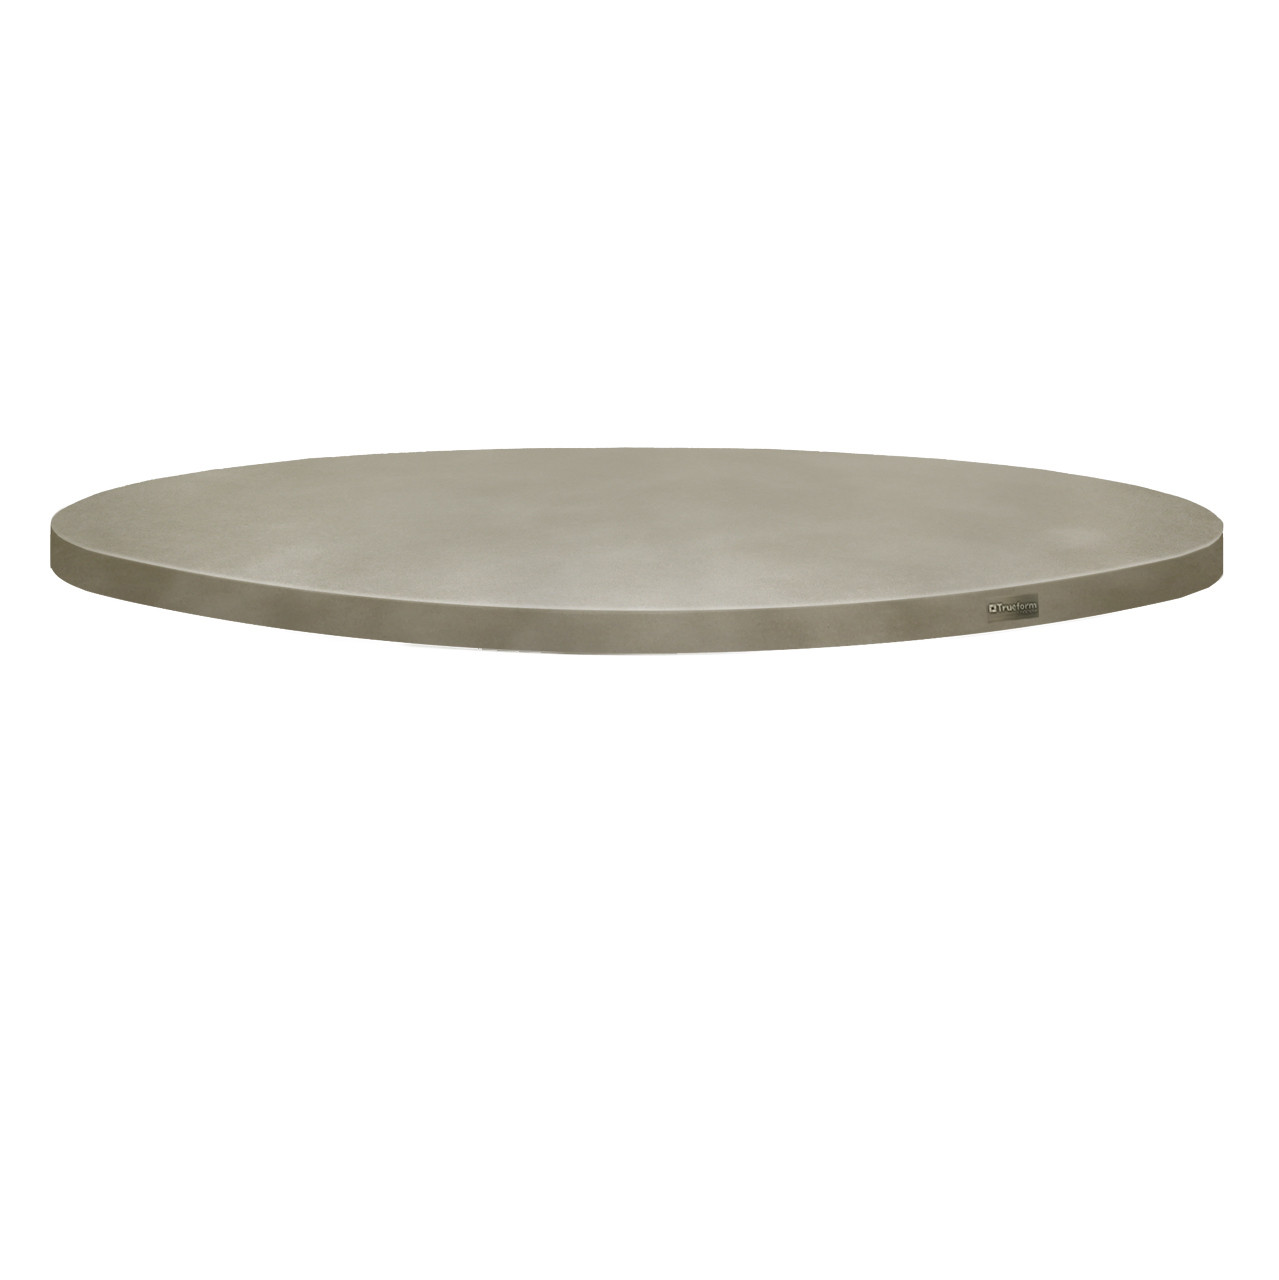 Charmant Trueform Round Concrete Table Tops Is Perfect For The Dining, Living, Or  Conference Room